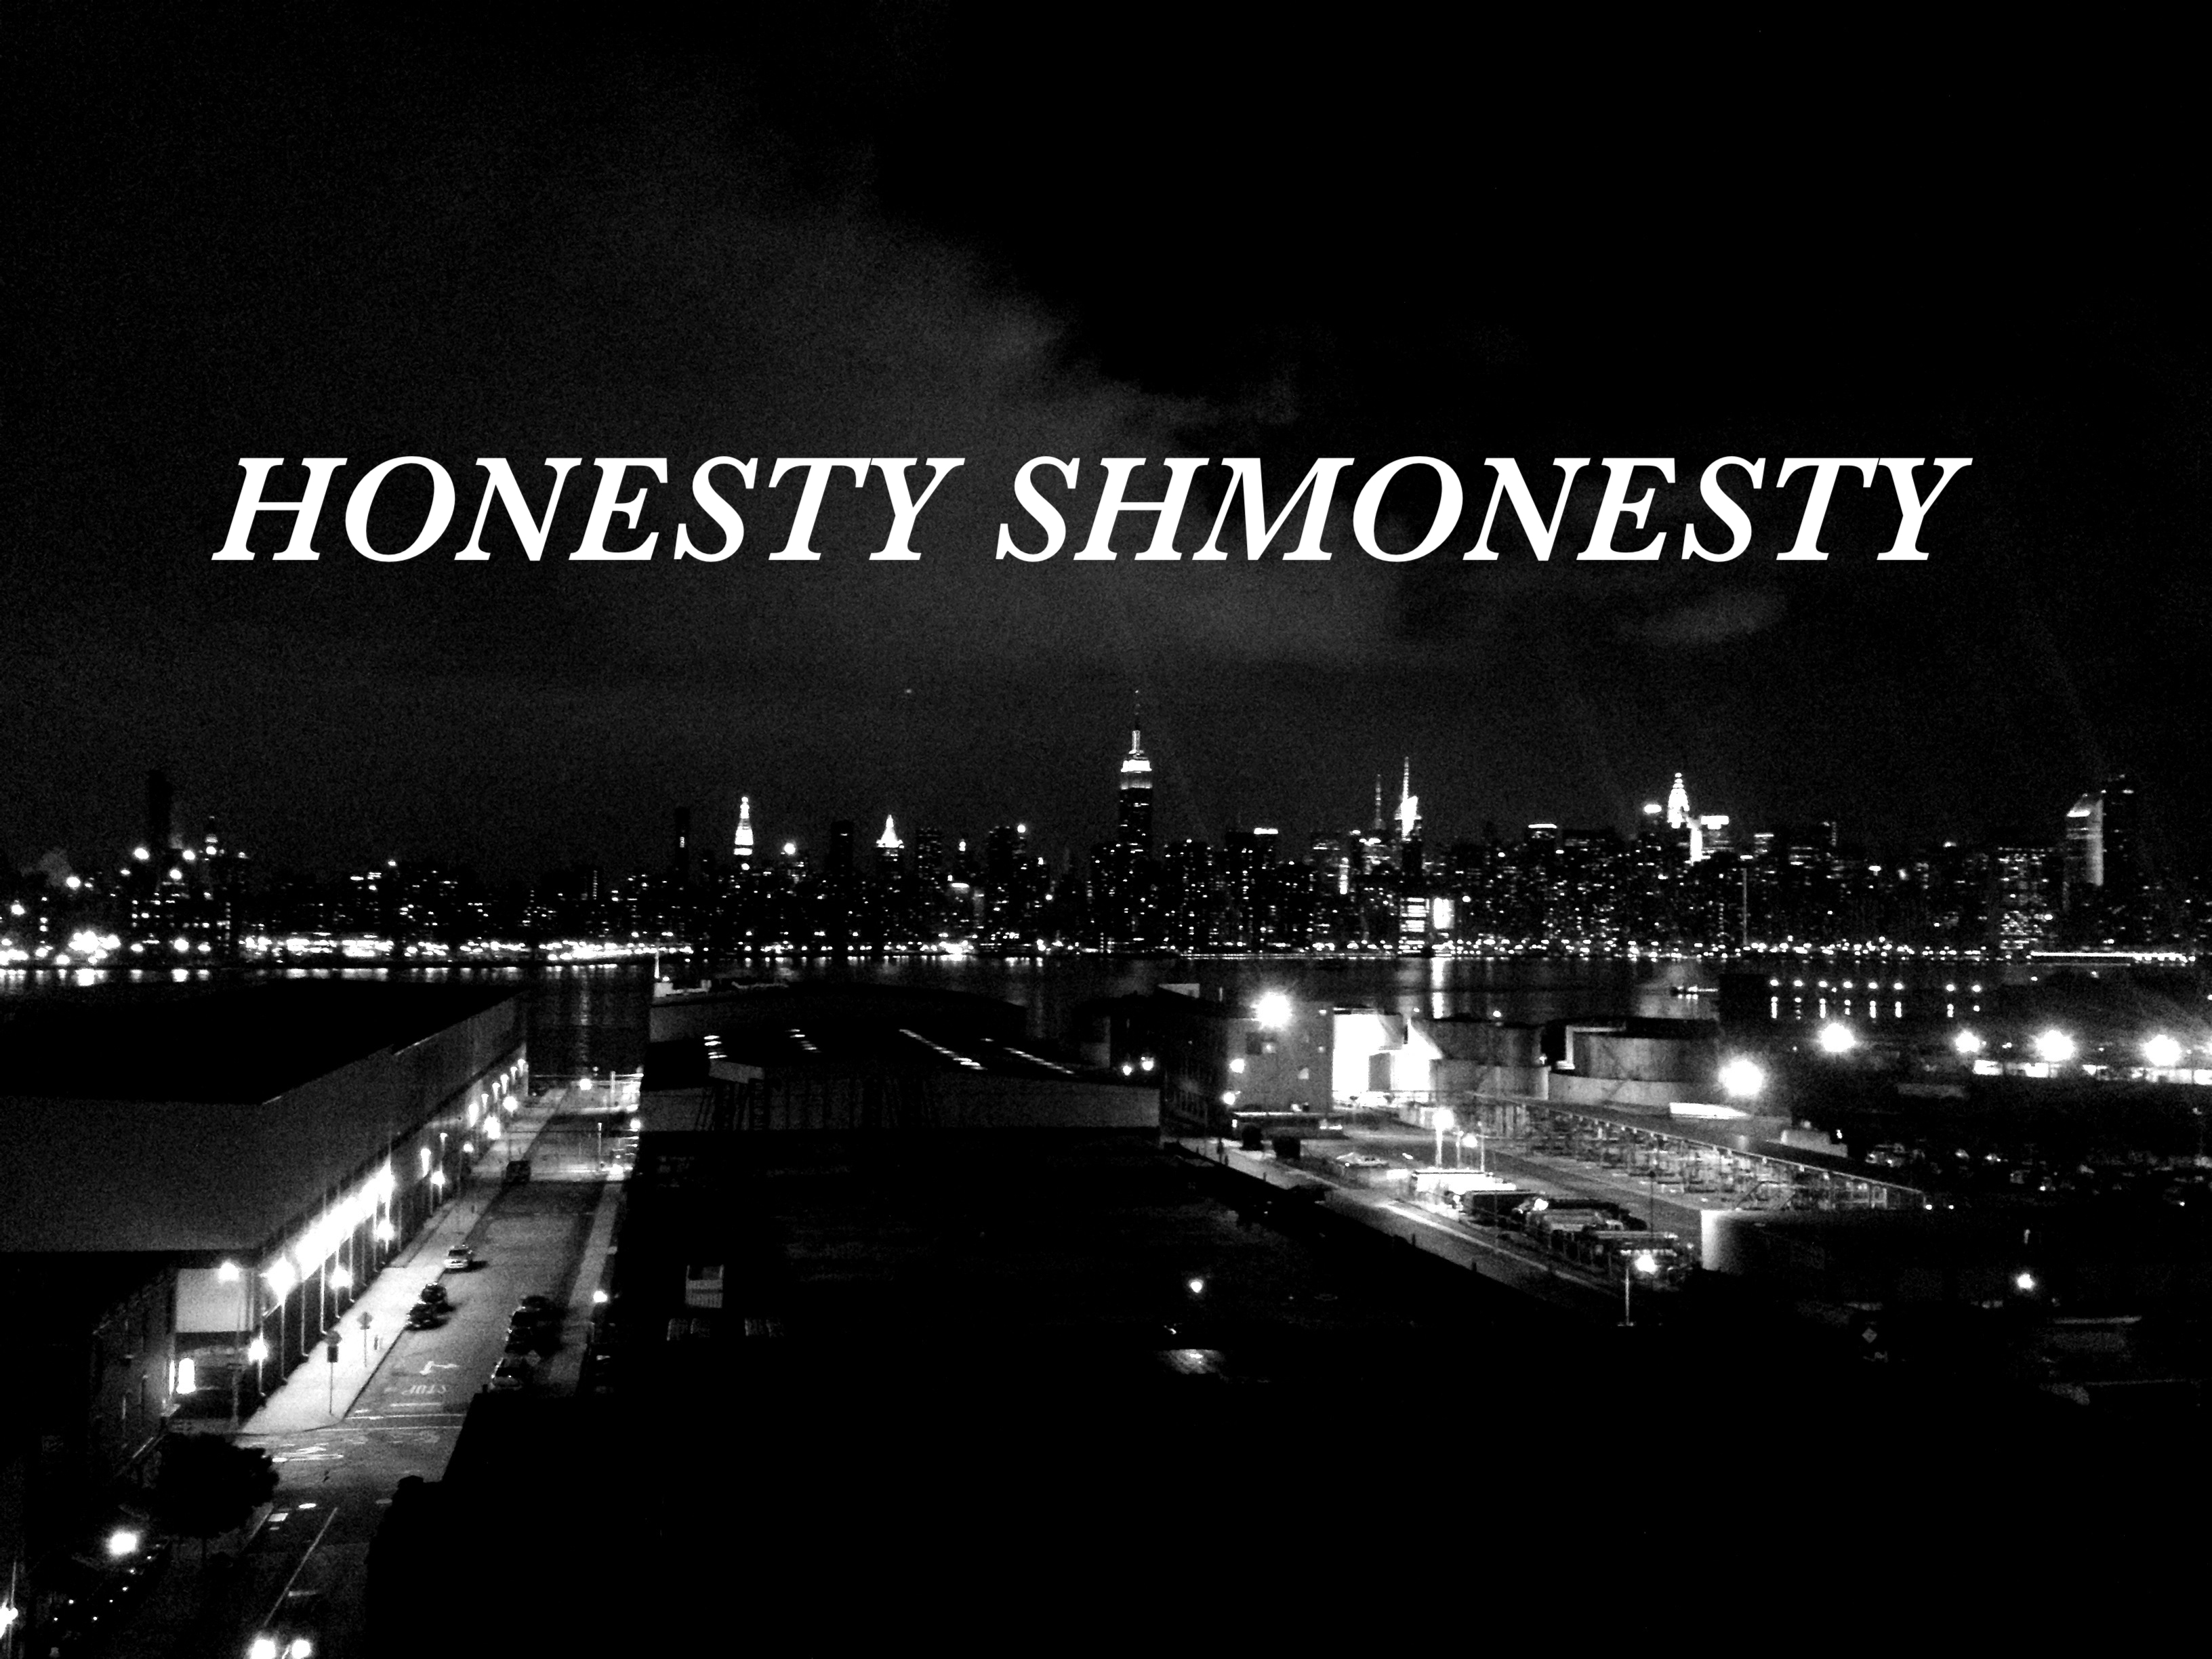 HONESTY SHMONESTY